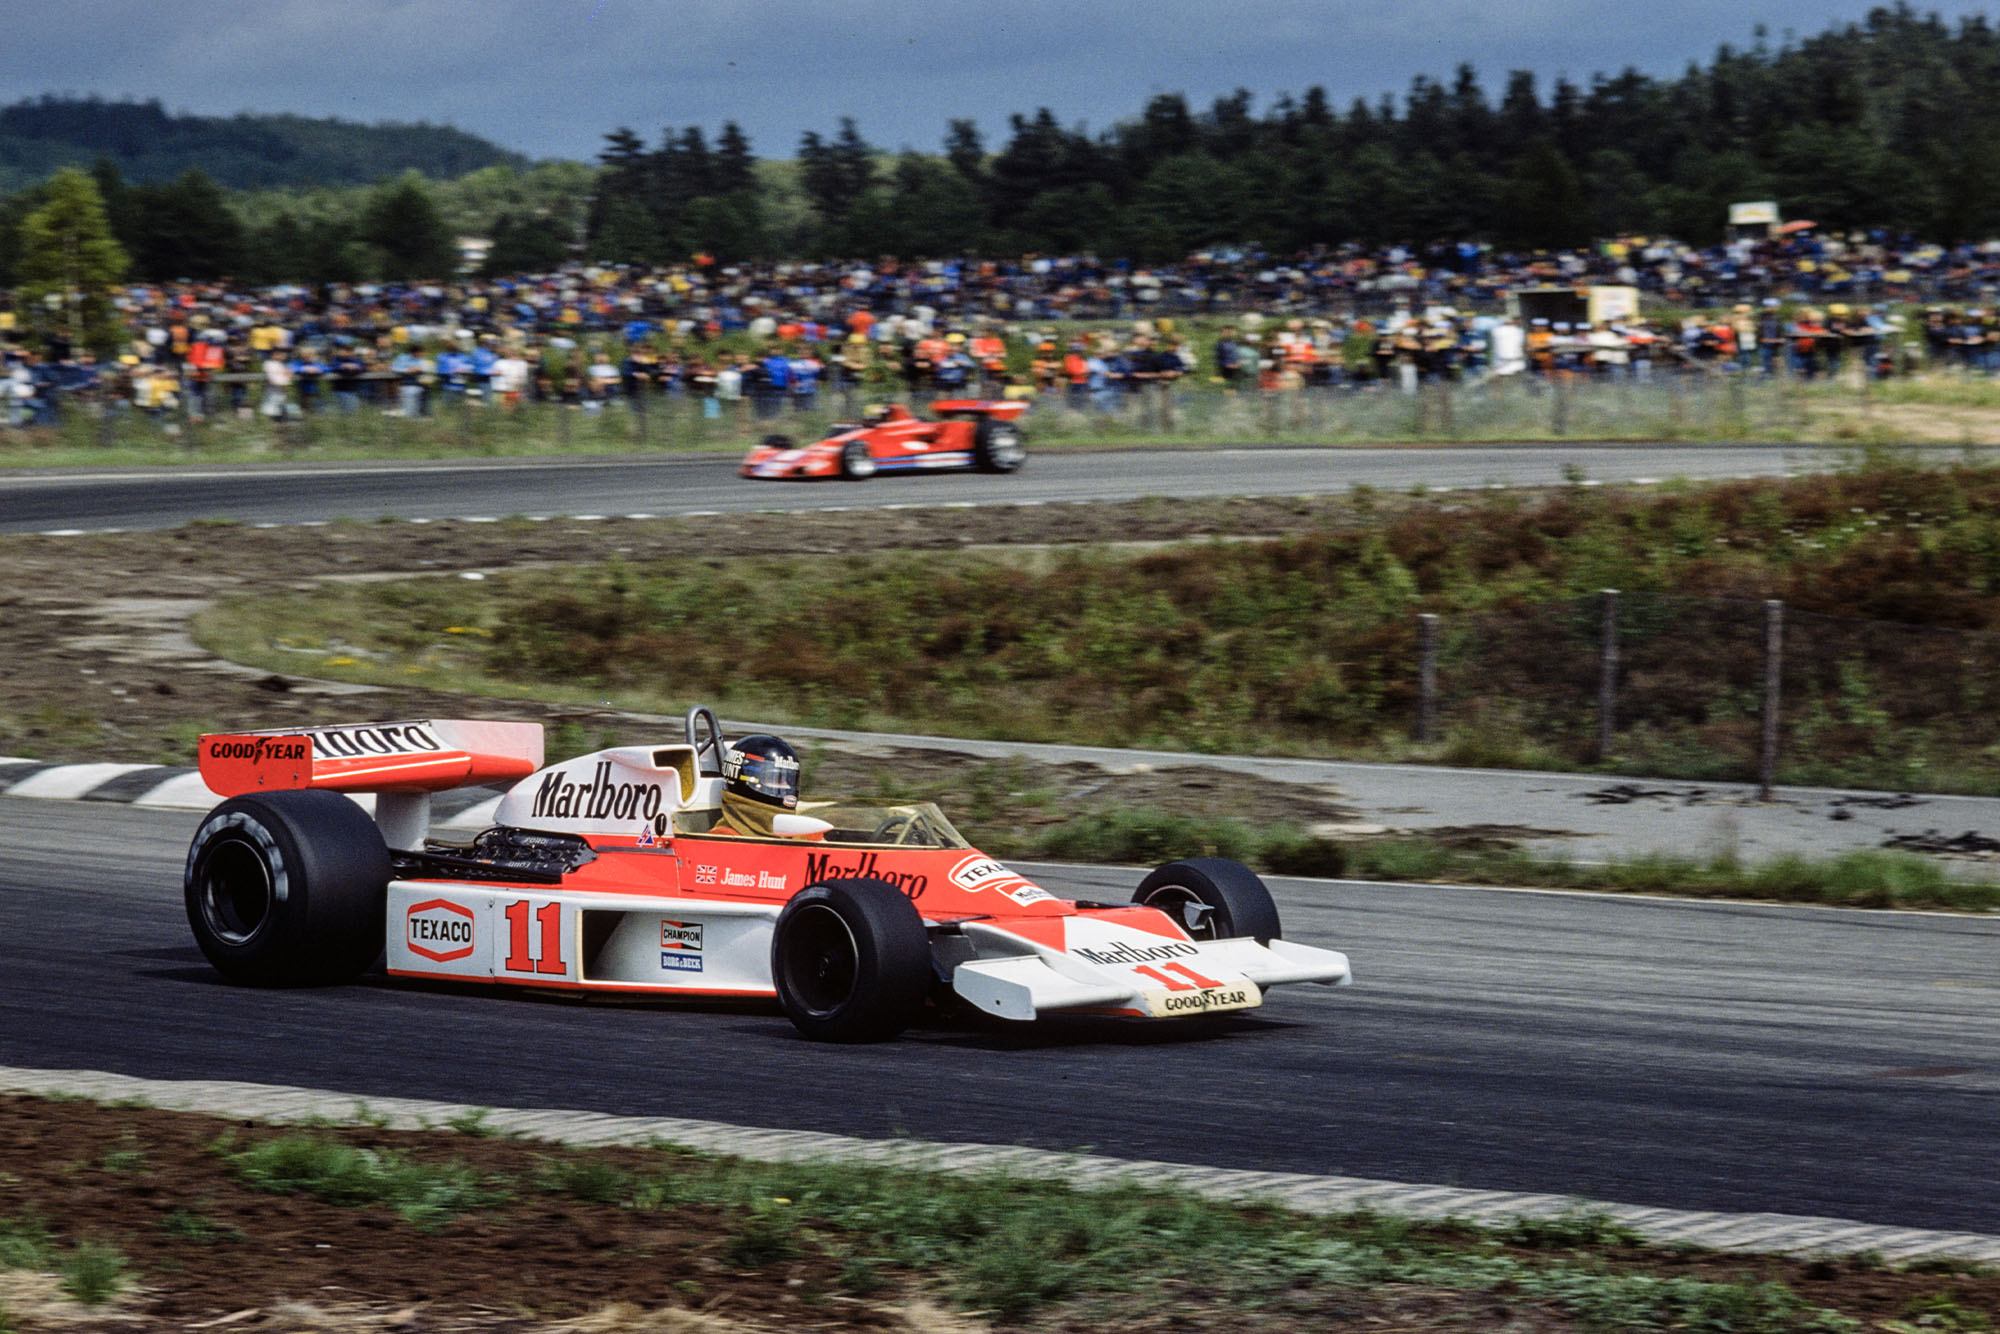 James Hunt (McLaren) at the 1976 Swedish Grand Prix.